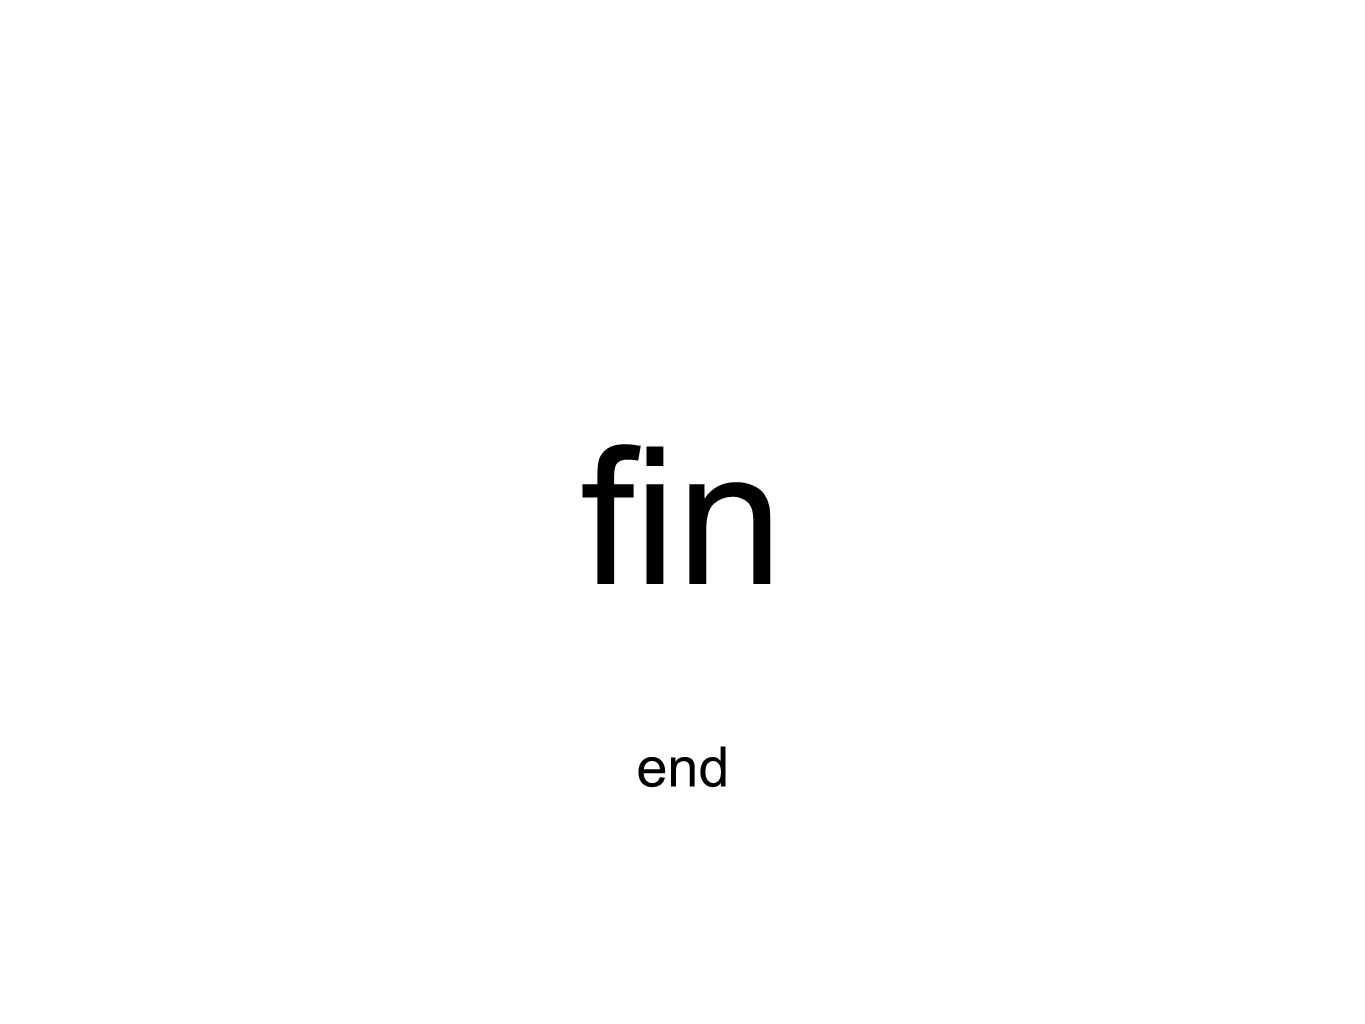 fin end